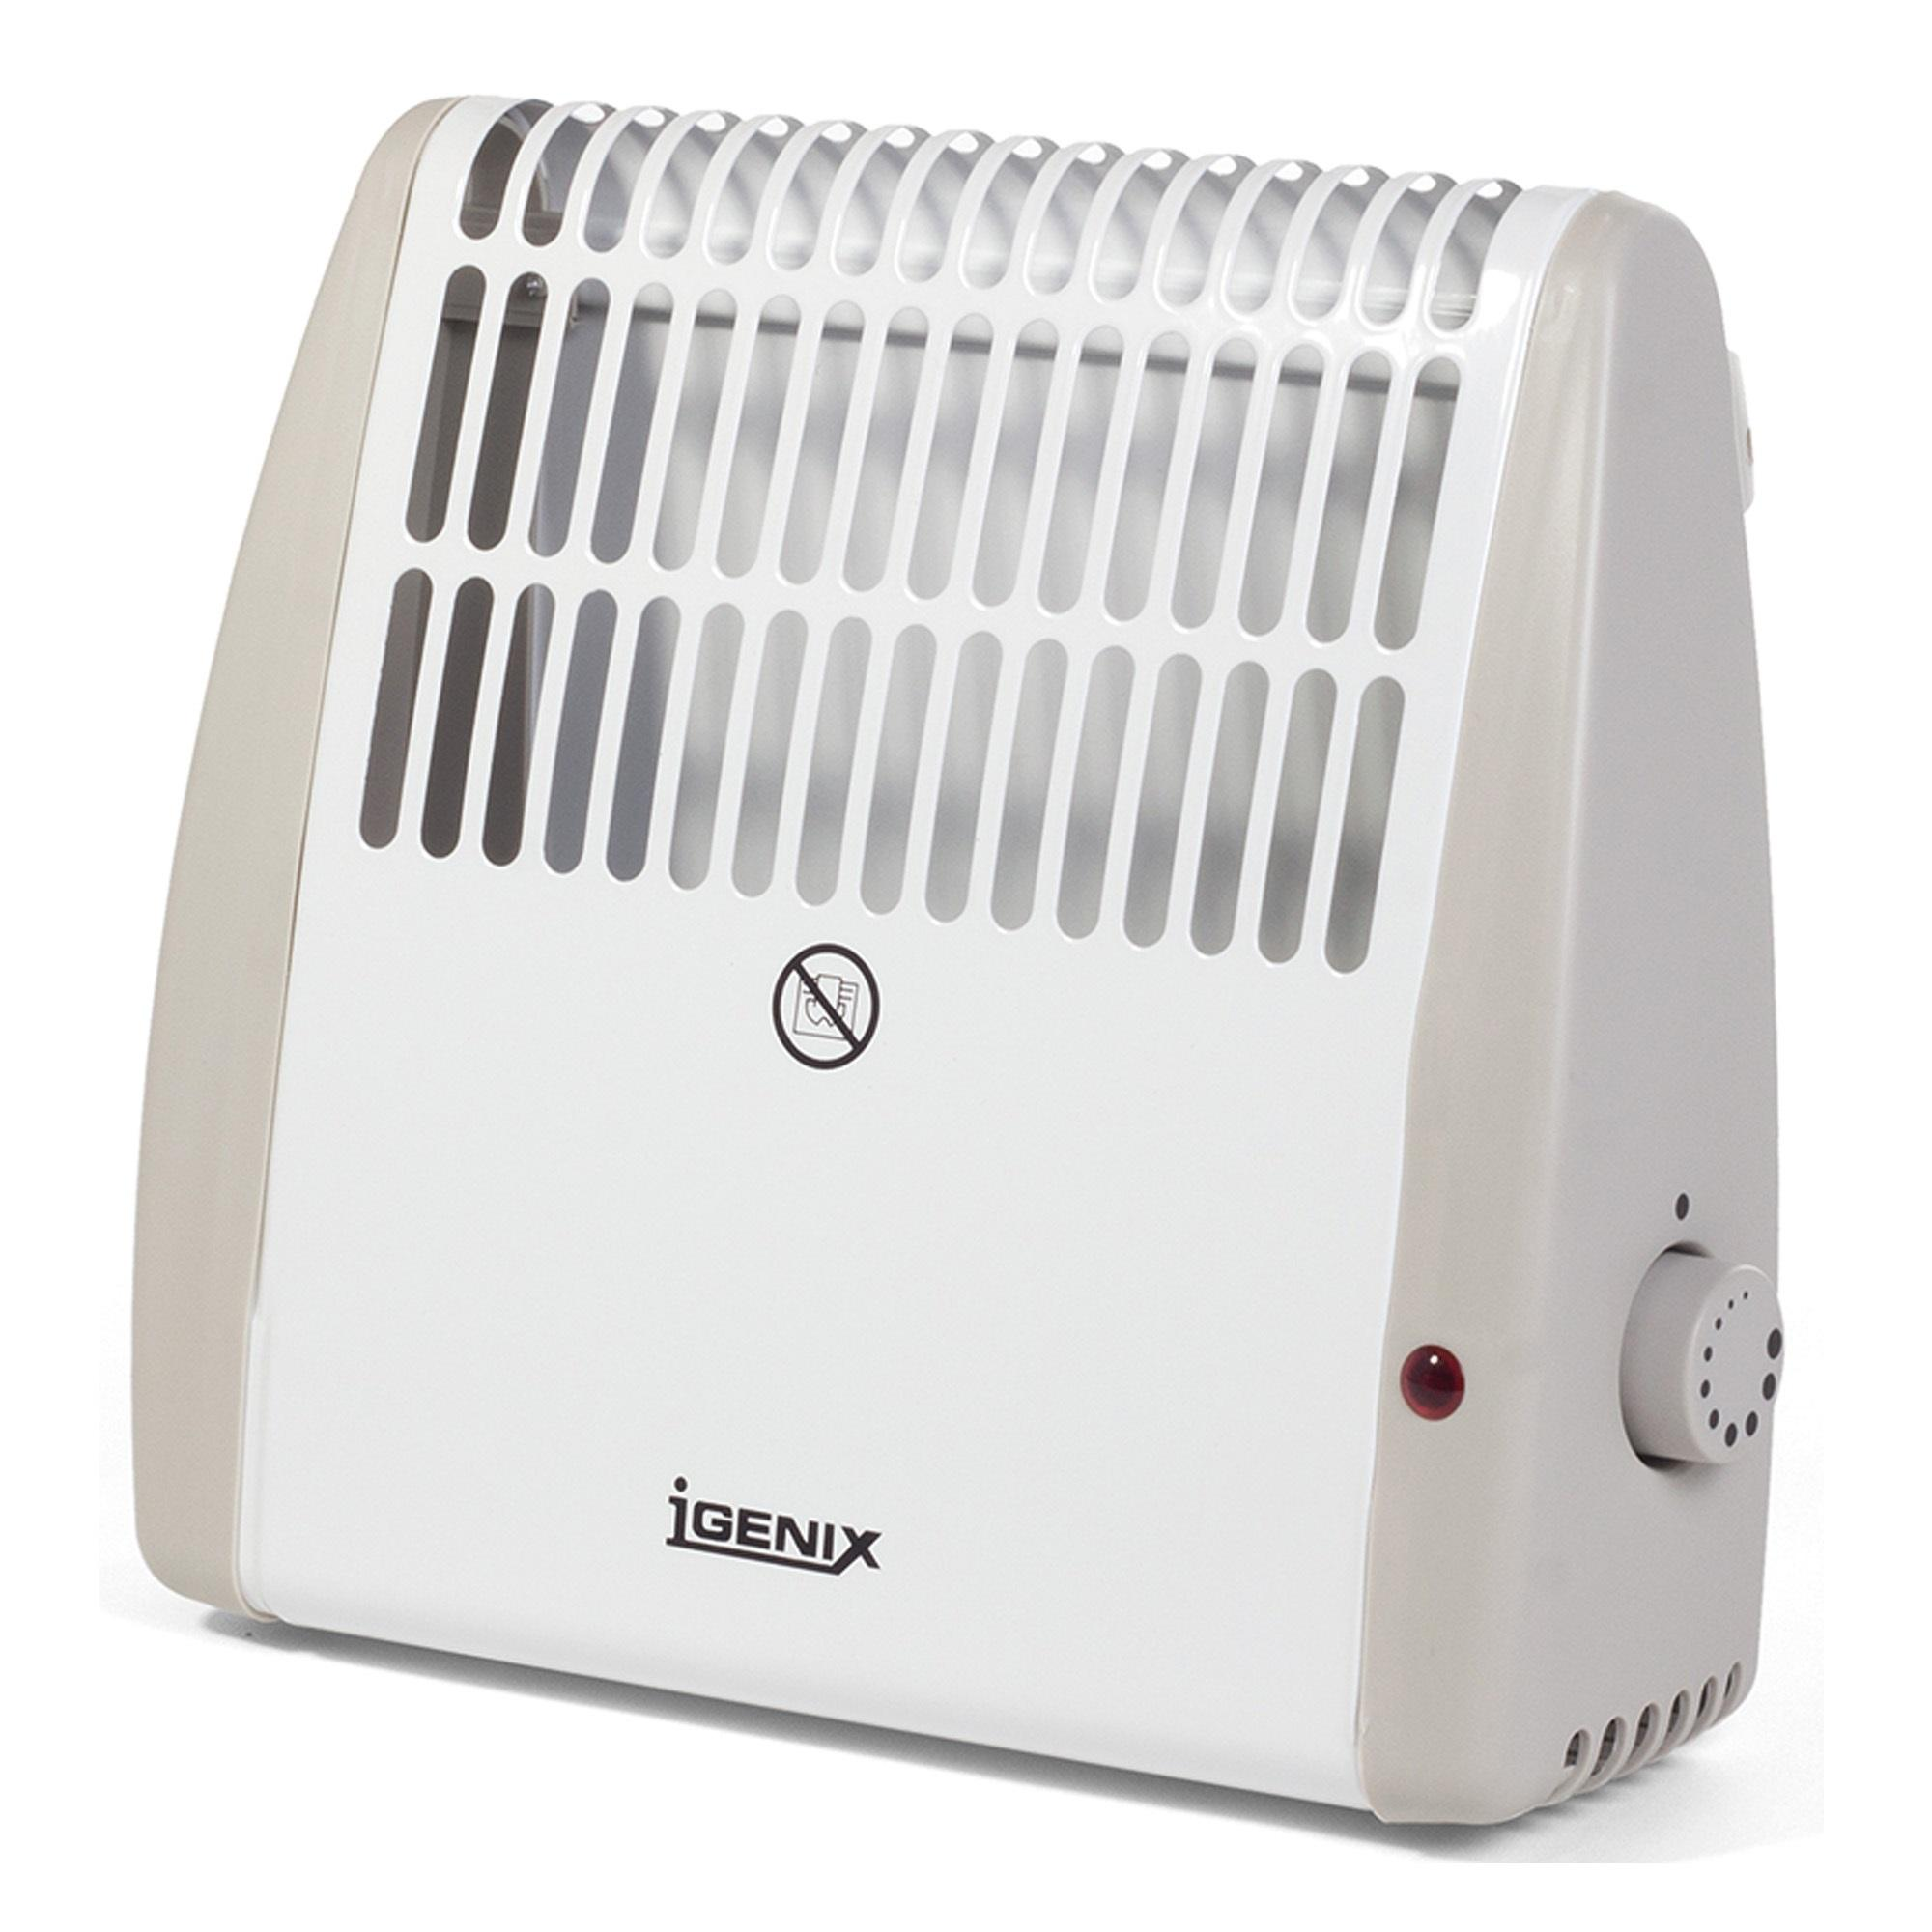 Igenix IG5005 Frost Watch Convector Heater 500 W White: Amazon.co  #5A4D4D